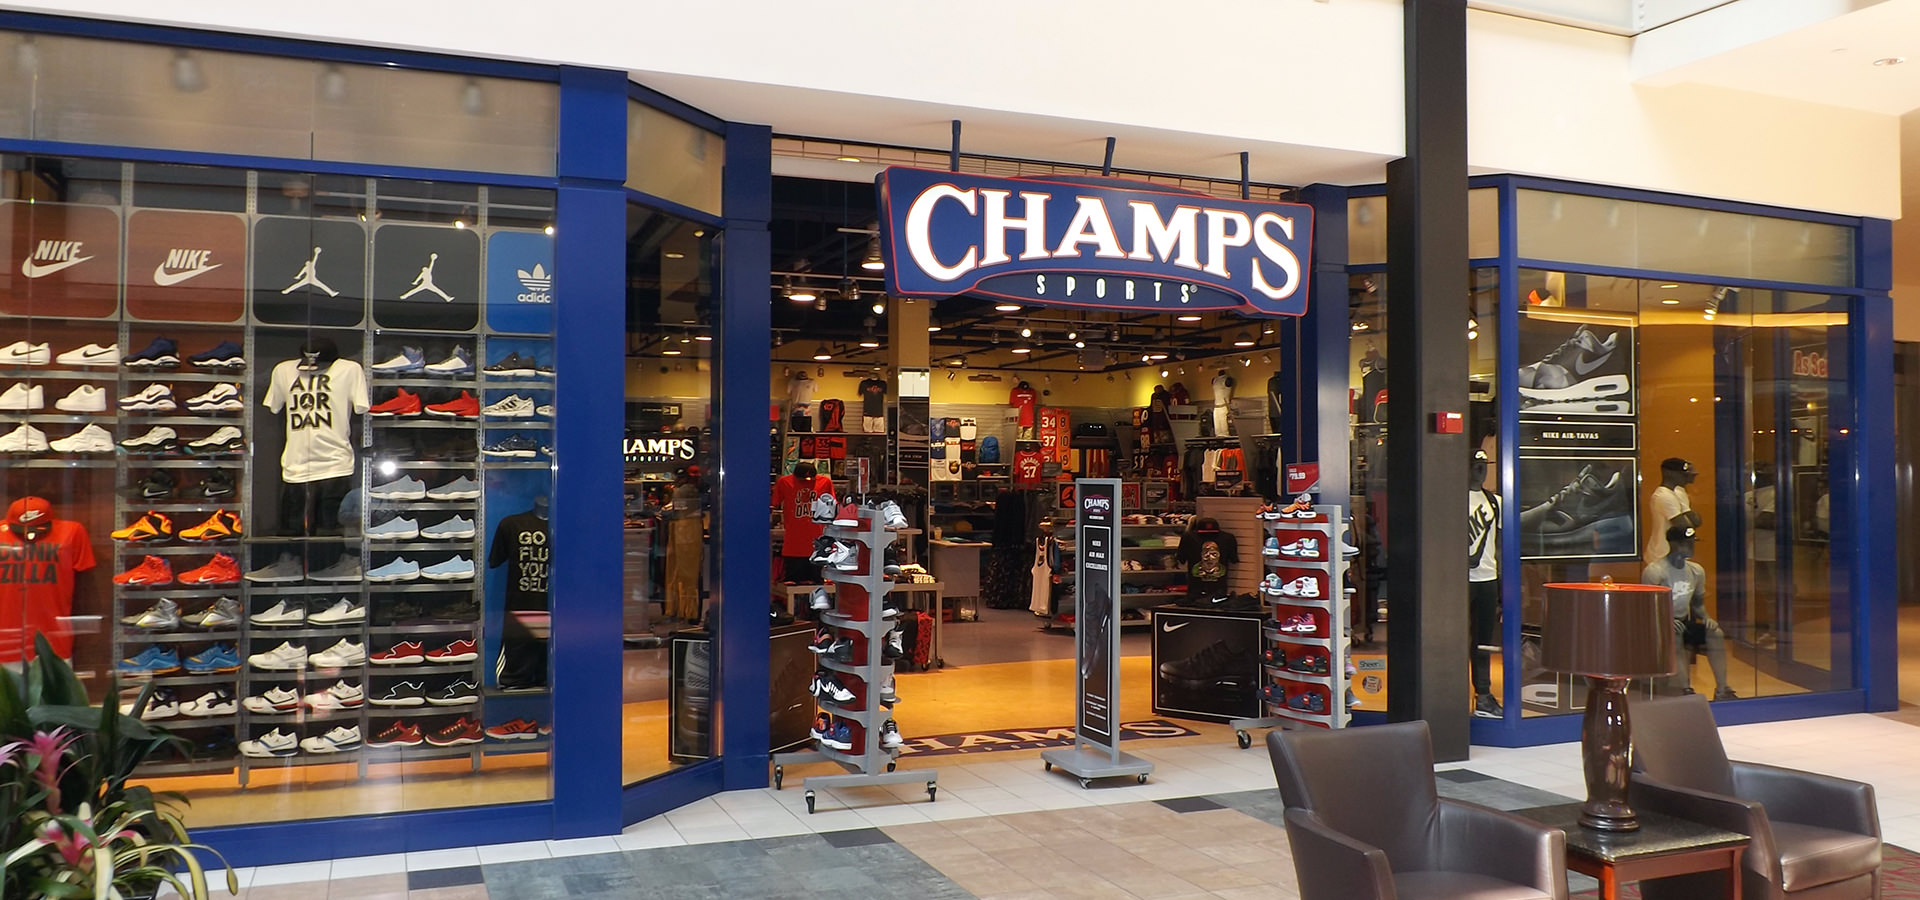 31ec7498aefd Champs Sports Near Me in Dulles